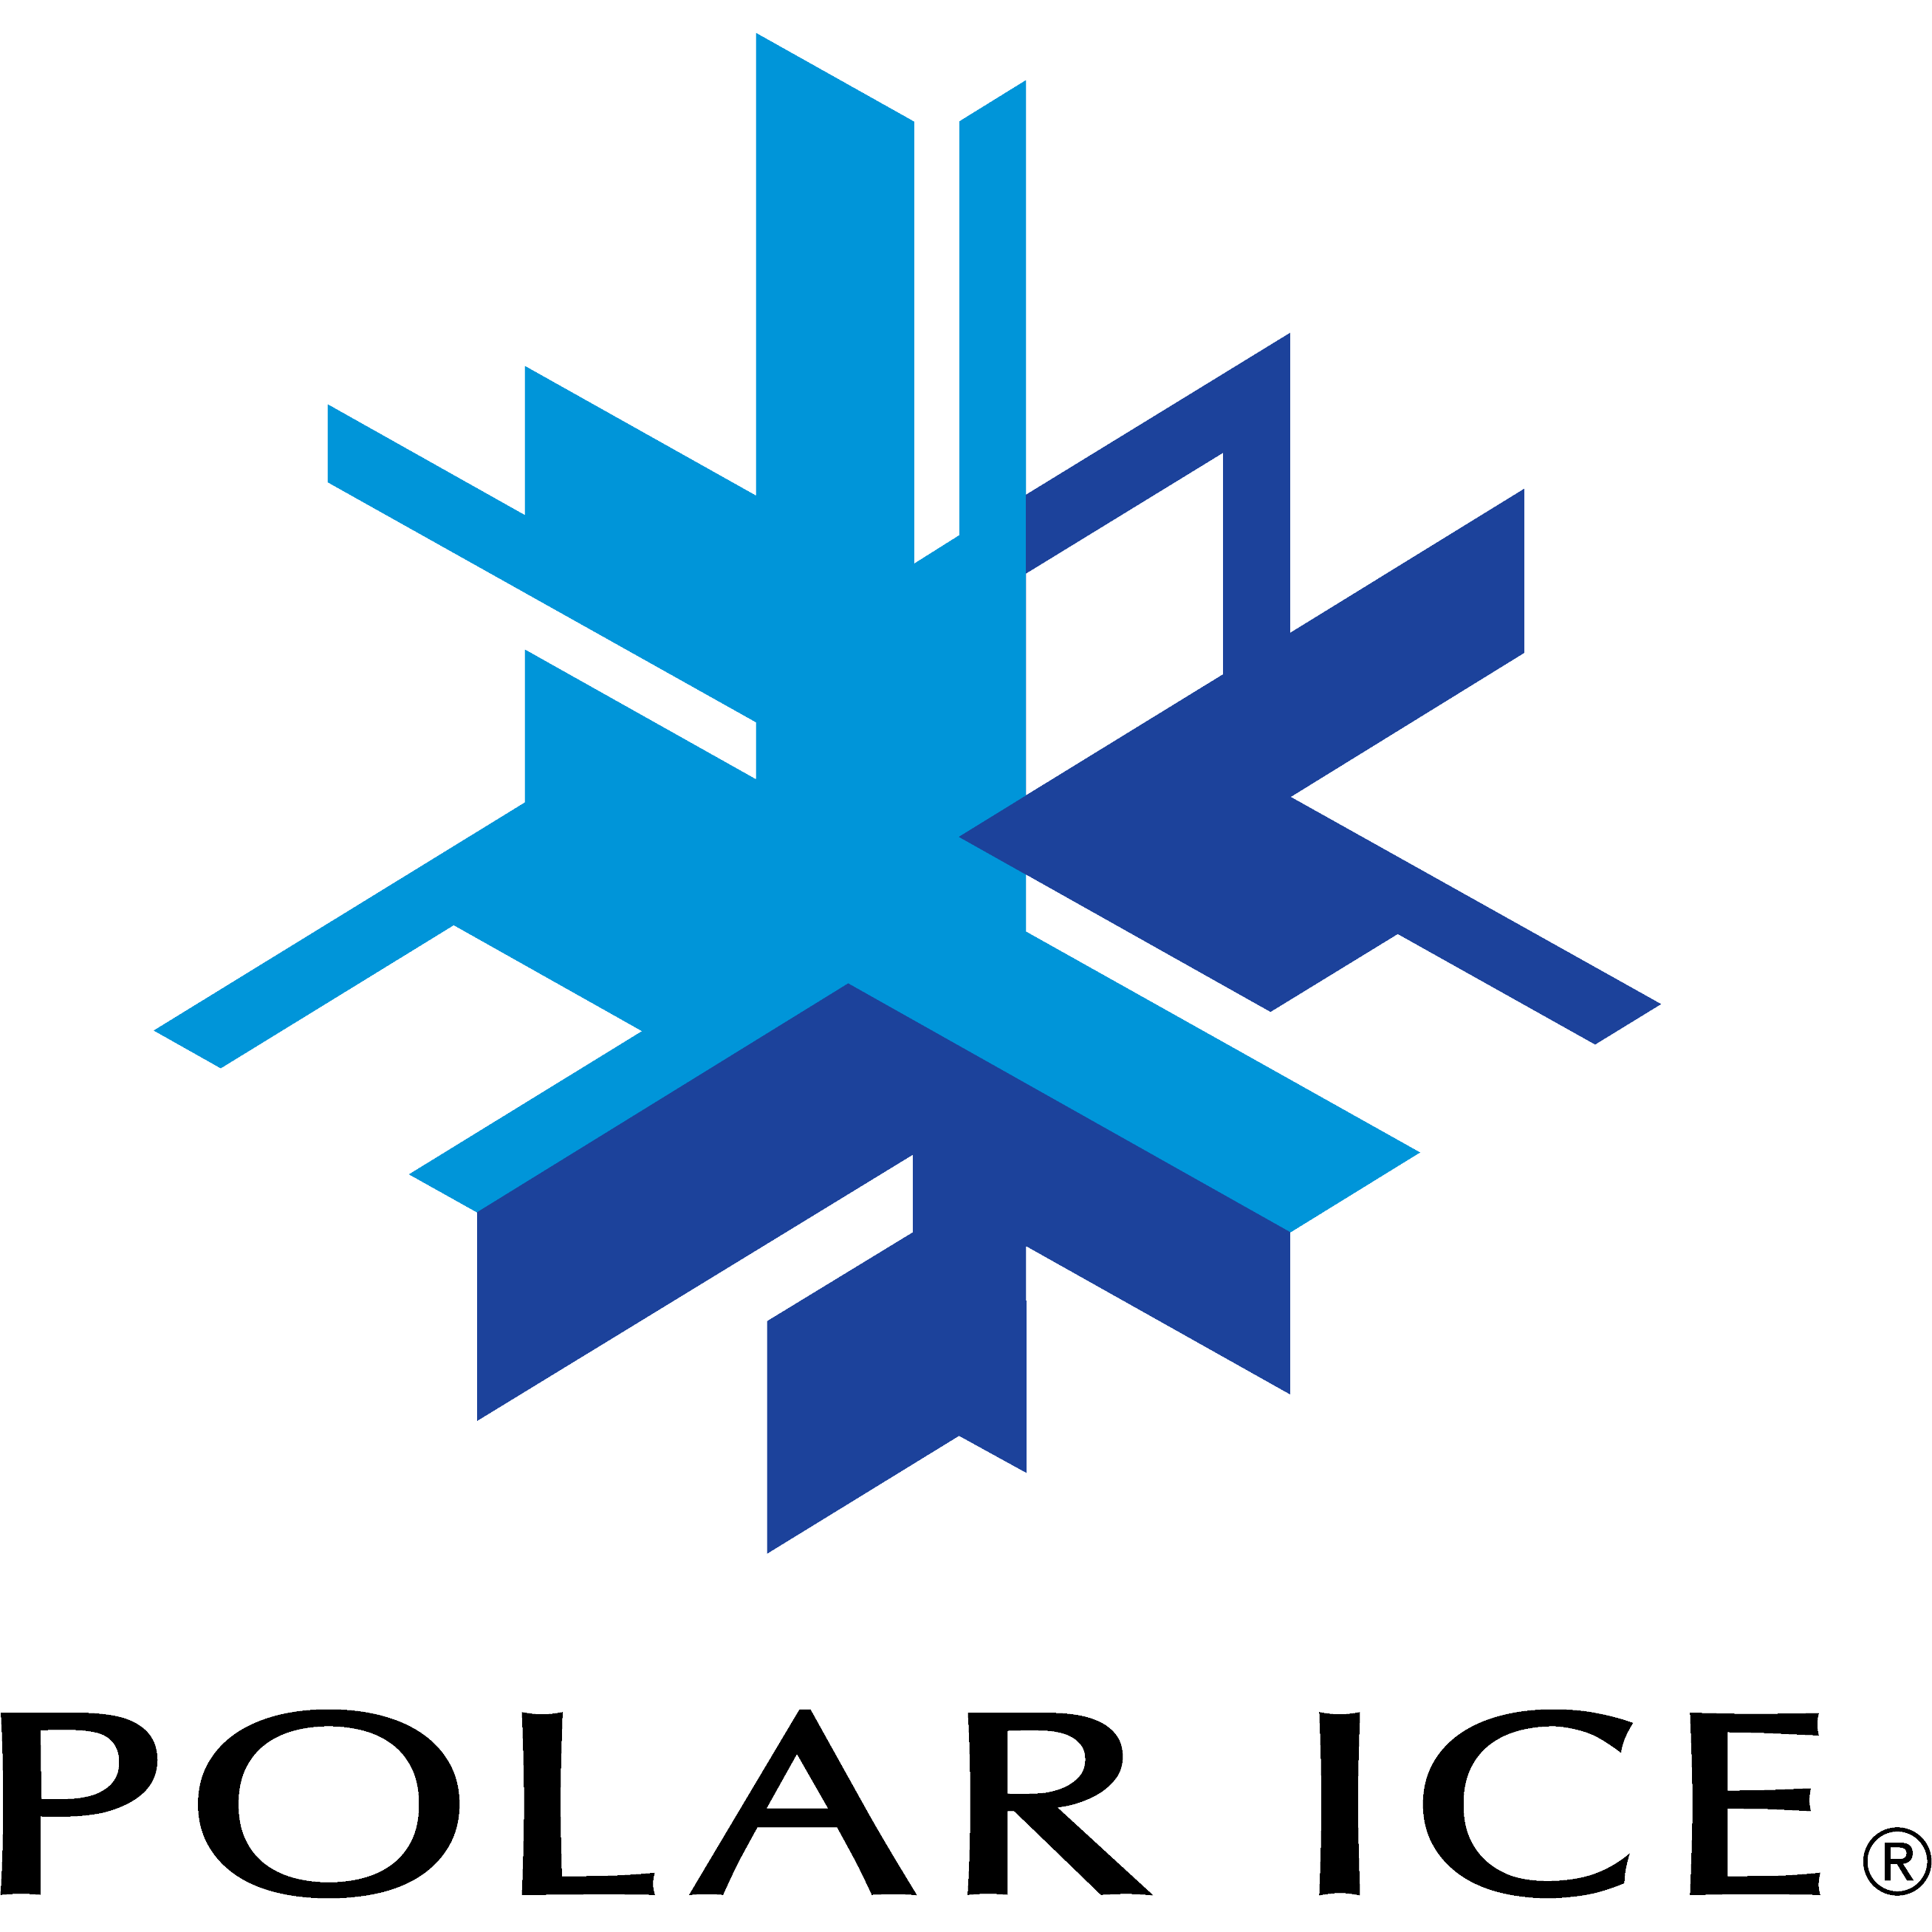 Polar_Ice_Logo.png